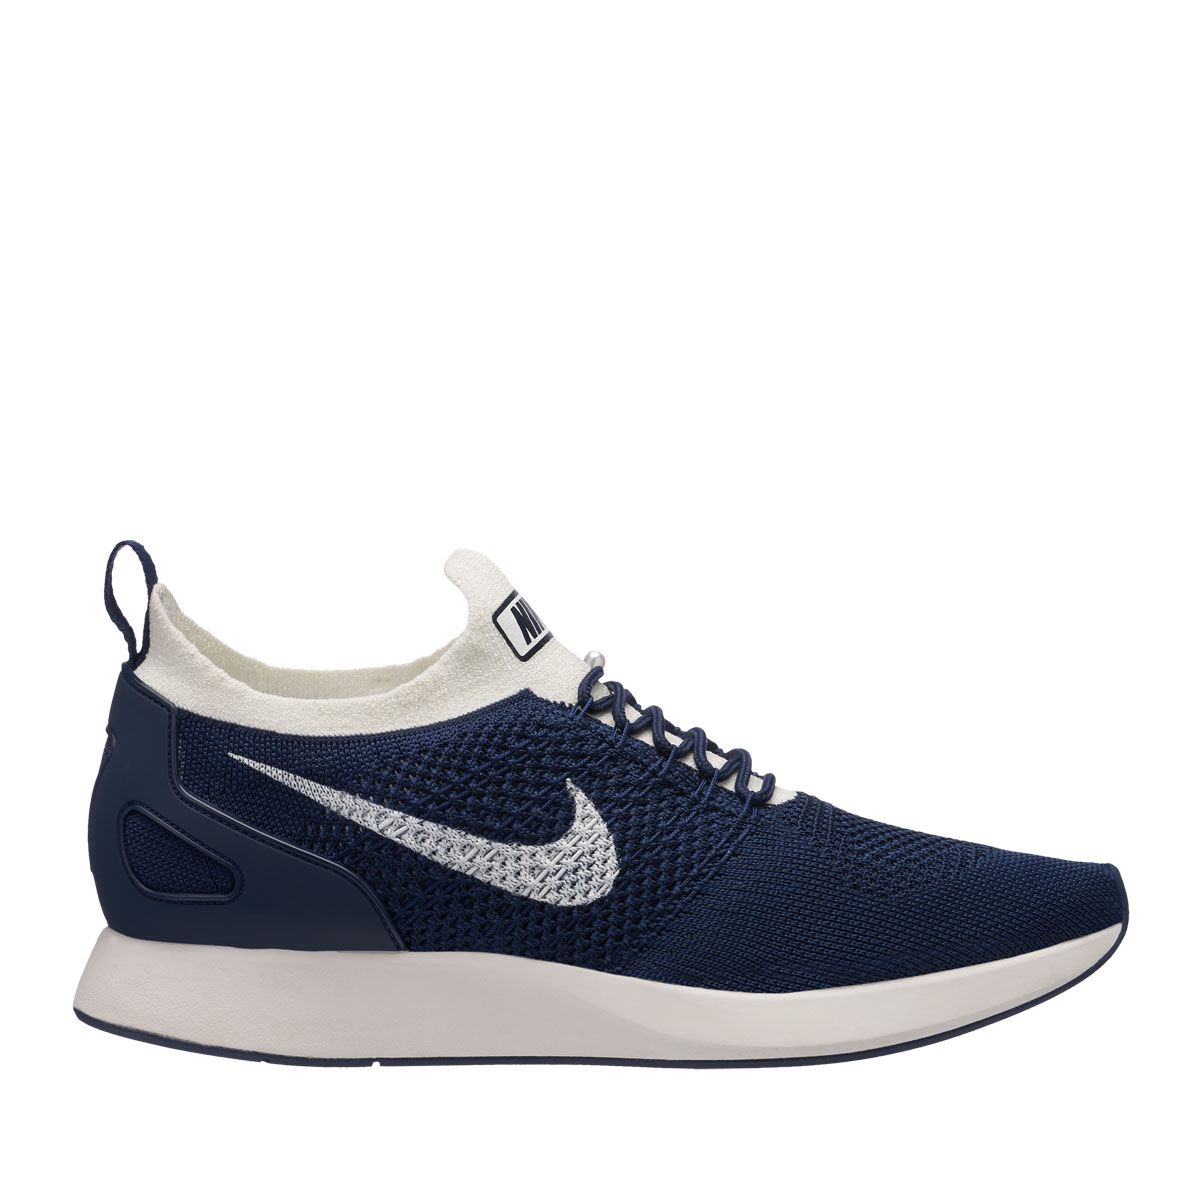 cc013e1ce867 ... ireland nike air zoom mariah flyknit racer nike air zoom maria fly knit racer  college navy